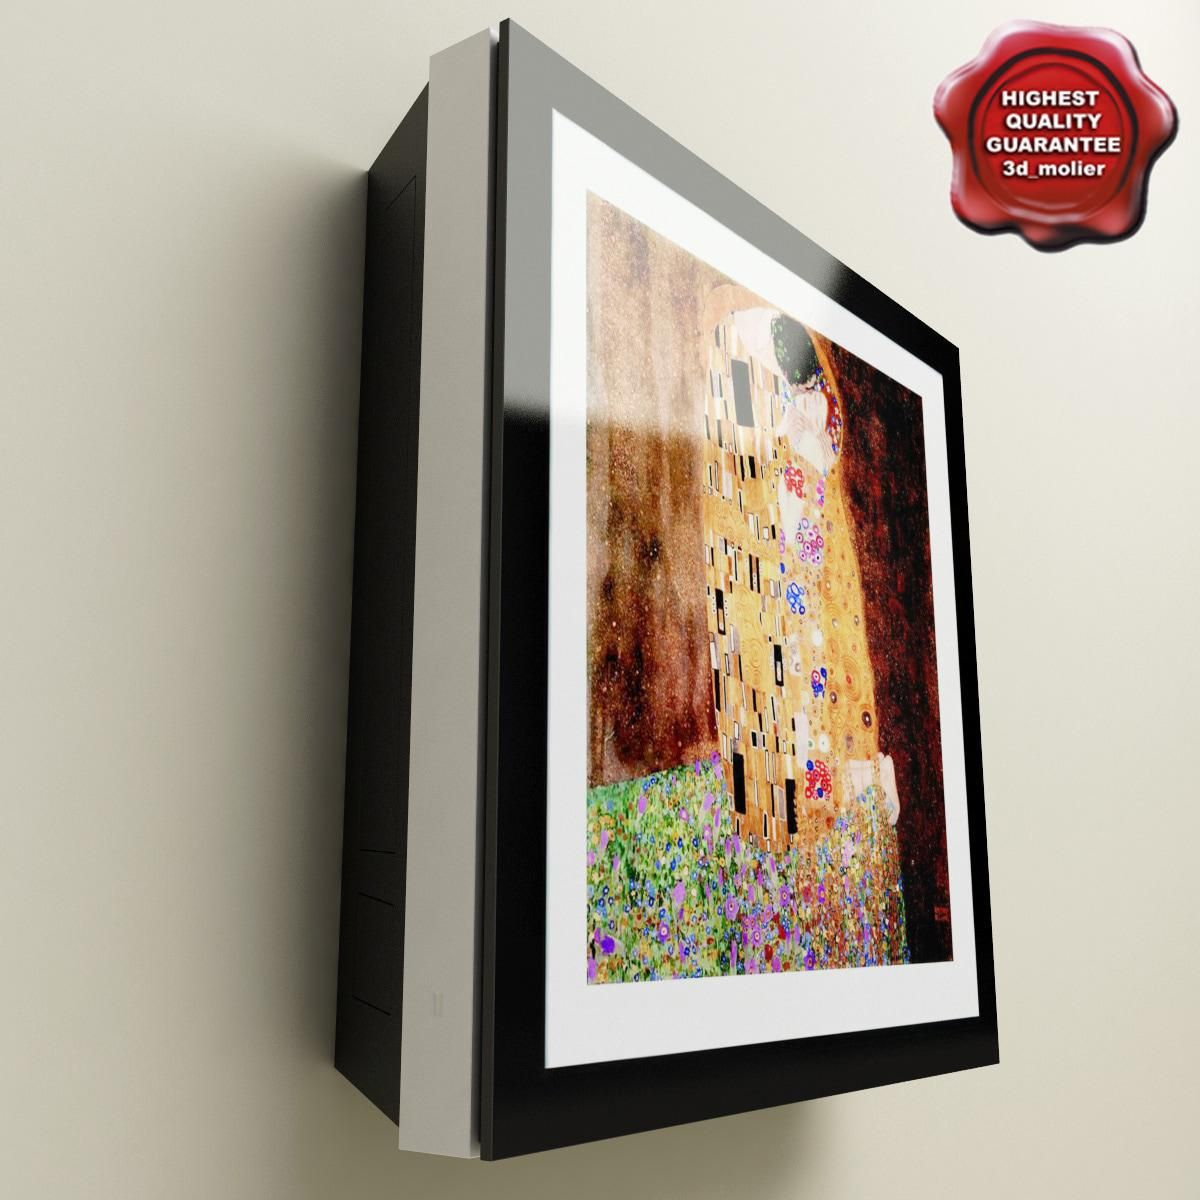 Wall Mounted Air Conditioner Lg Art Cool 3d Model Ad Air Conditioner Wall Mounted Lg Art Cool Wall Mounted Air Conditioner Art